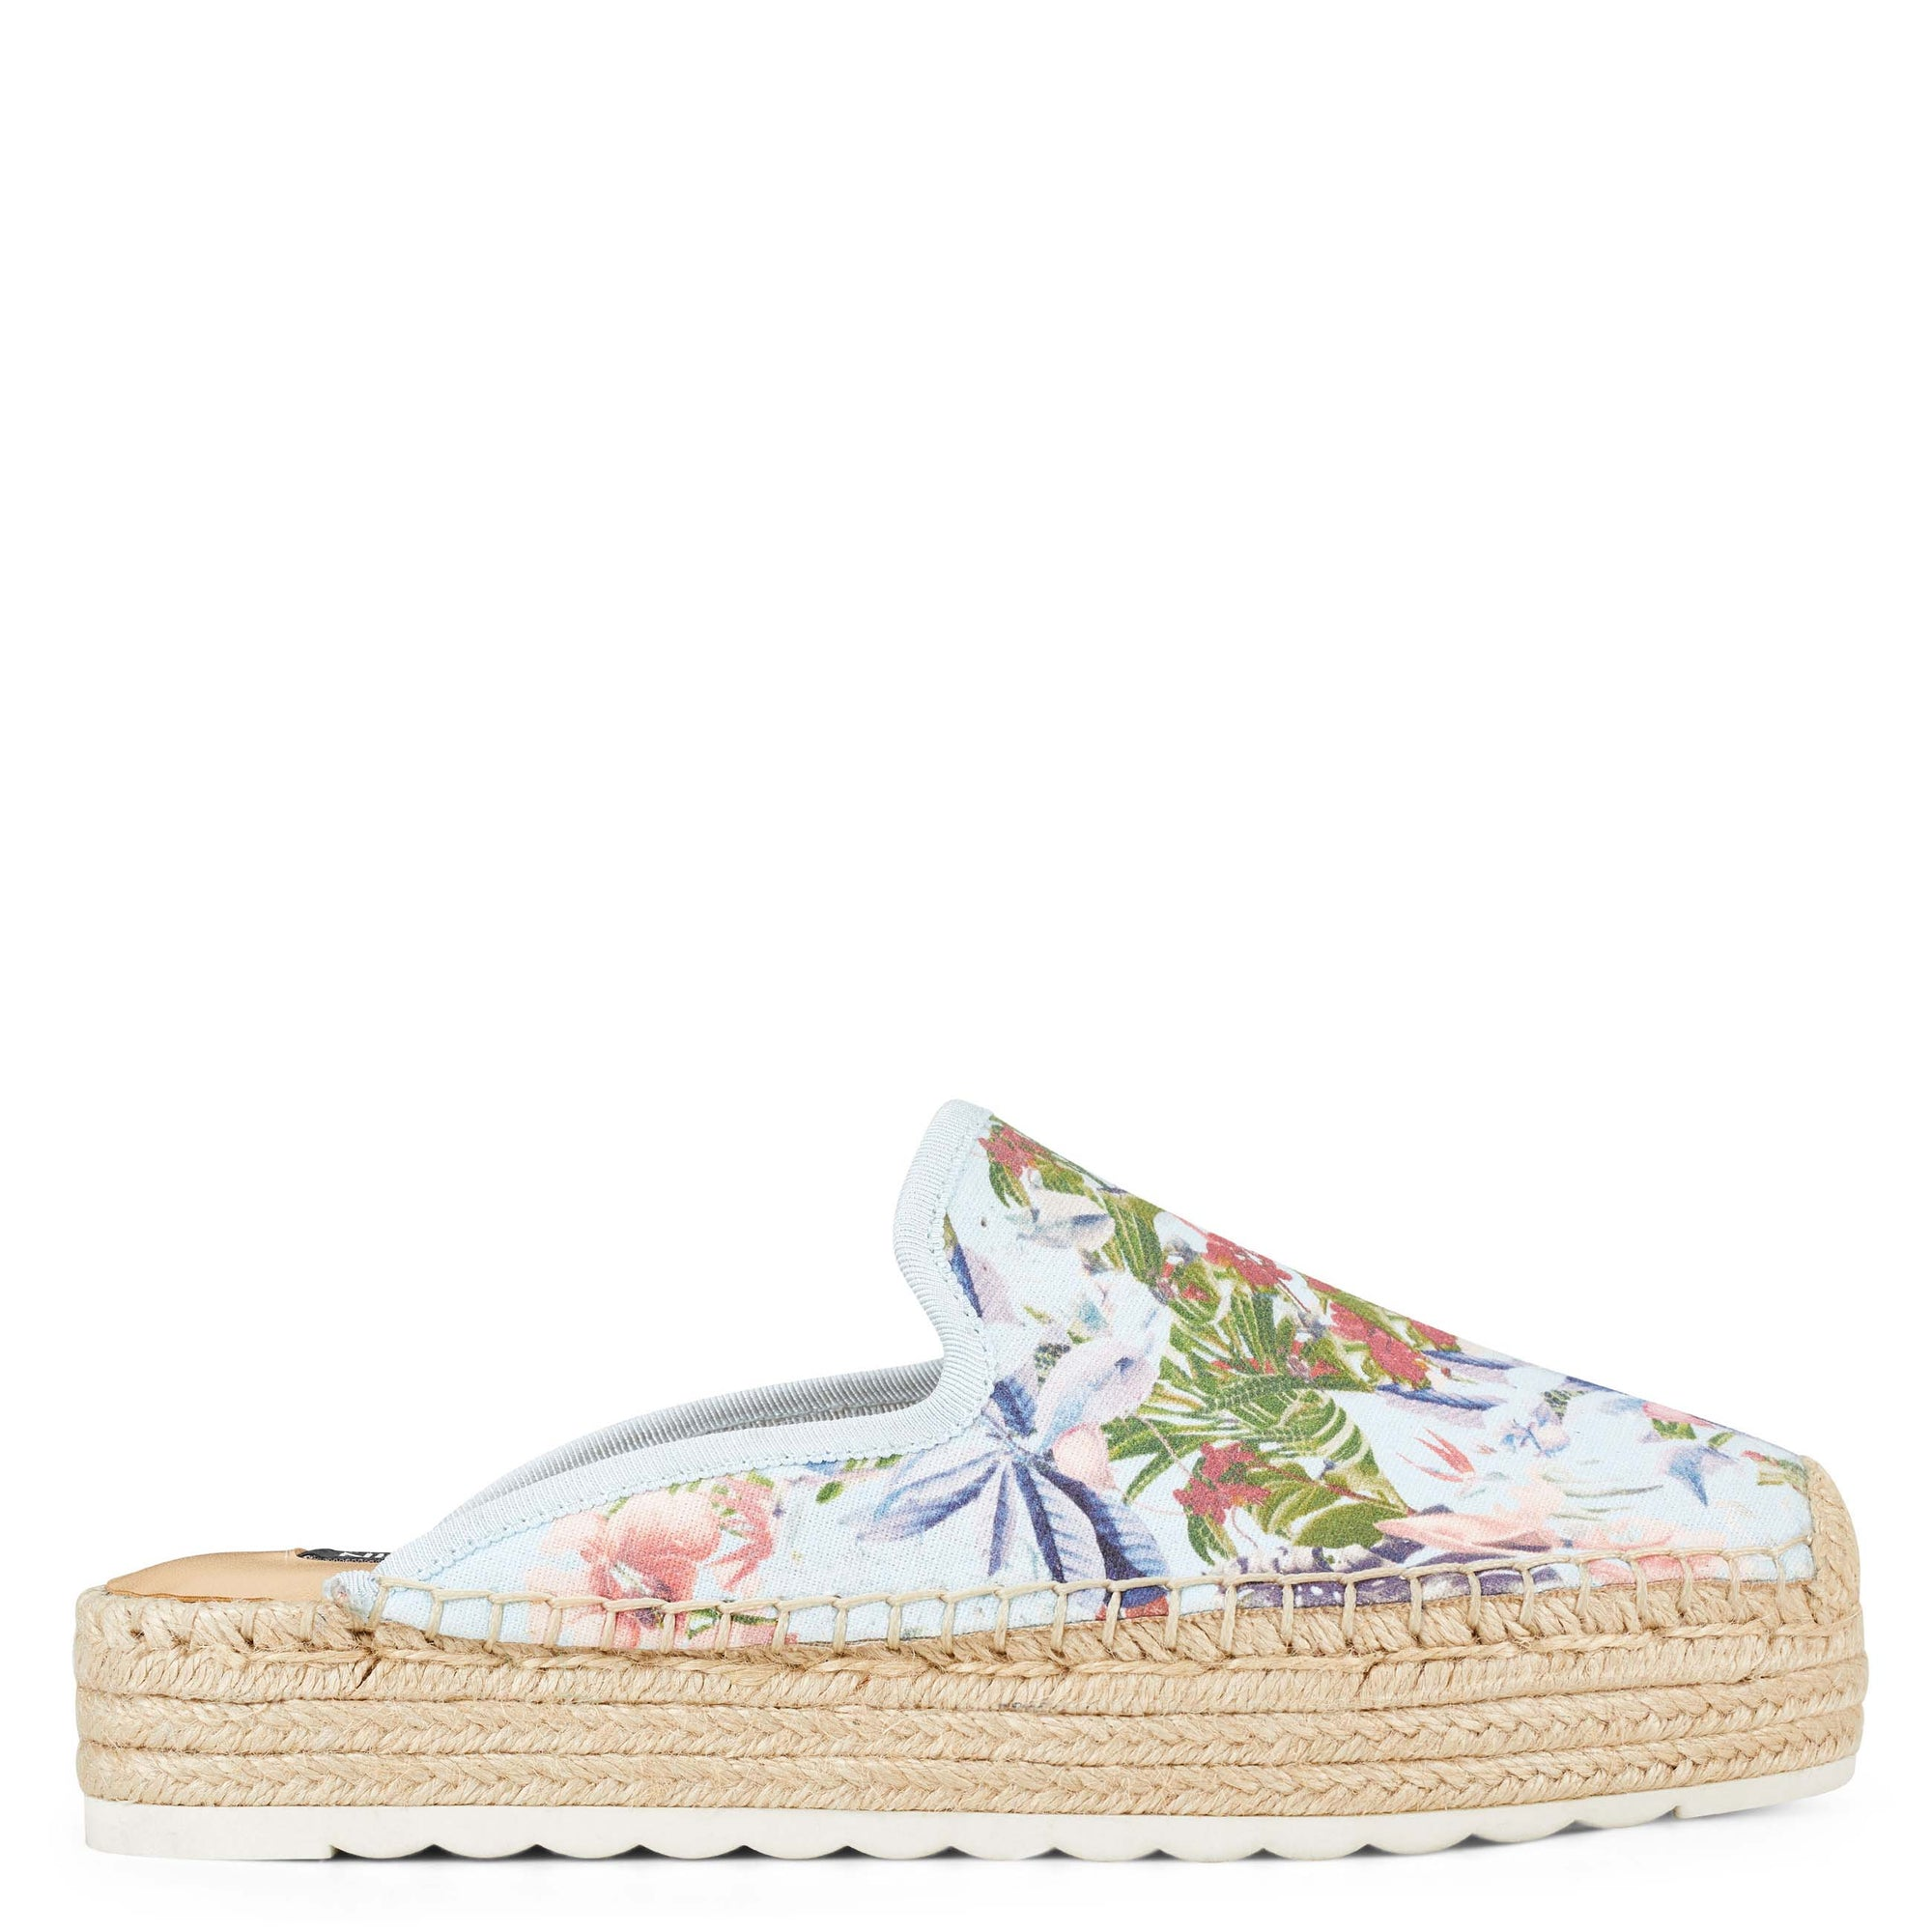 sweetie-slip-on-espadrille-mules-in-floral-print-fabric